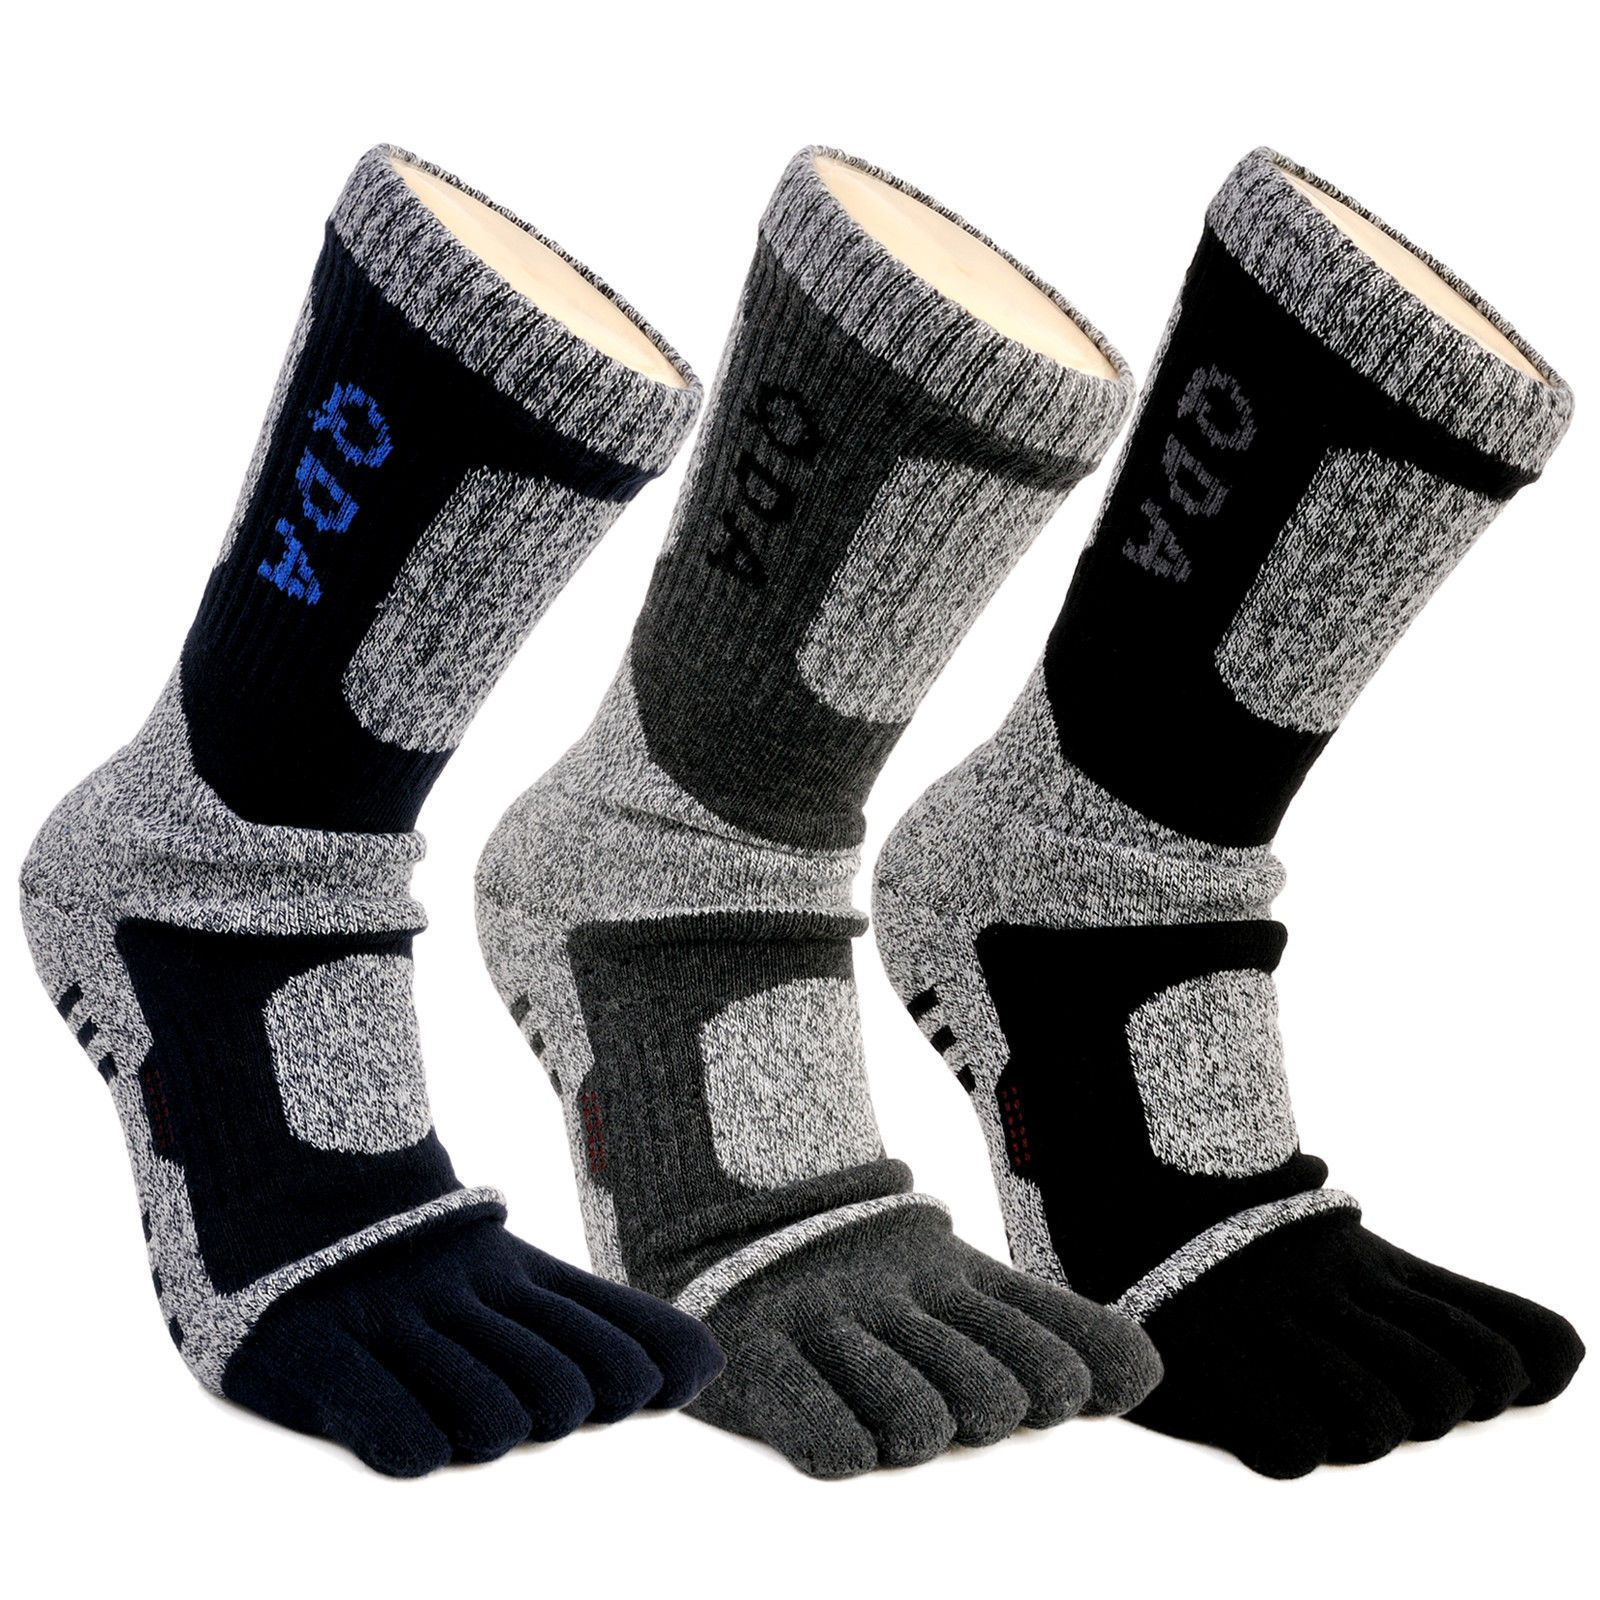 Mens Sports Compression Running Cycling Anti-Blister Cool Five Finger Toe Socks